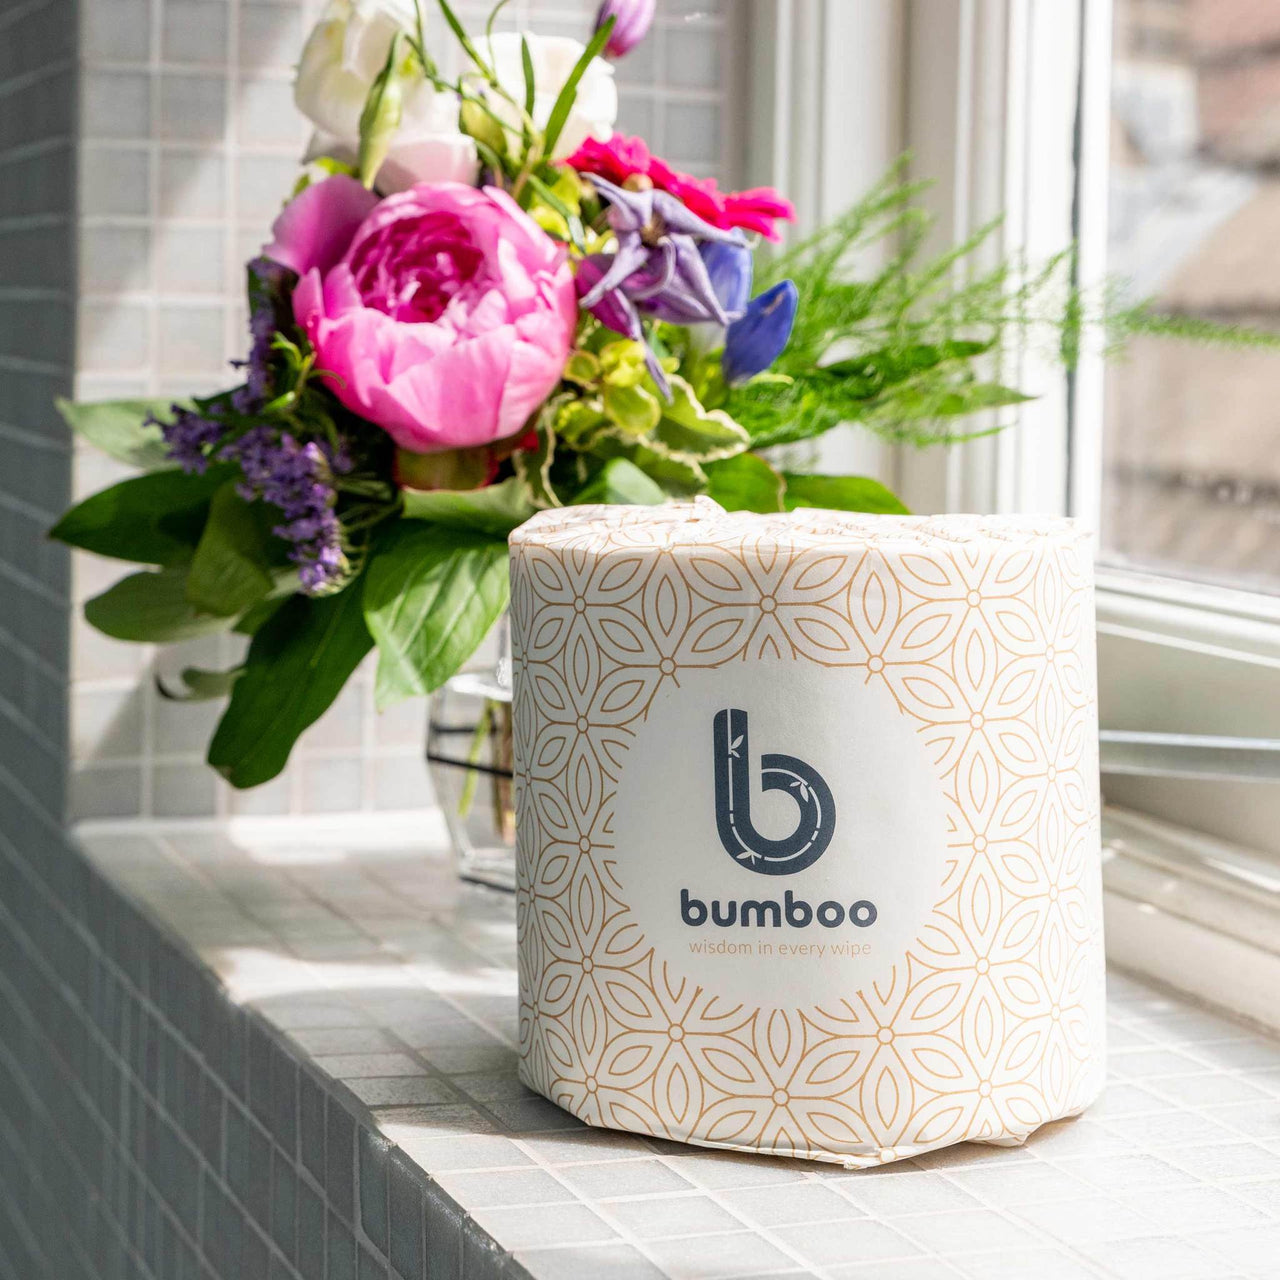 Luxury Bamboo Toilet Roll